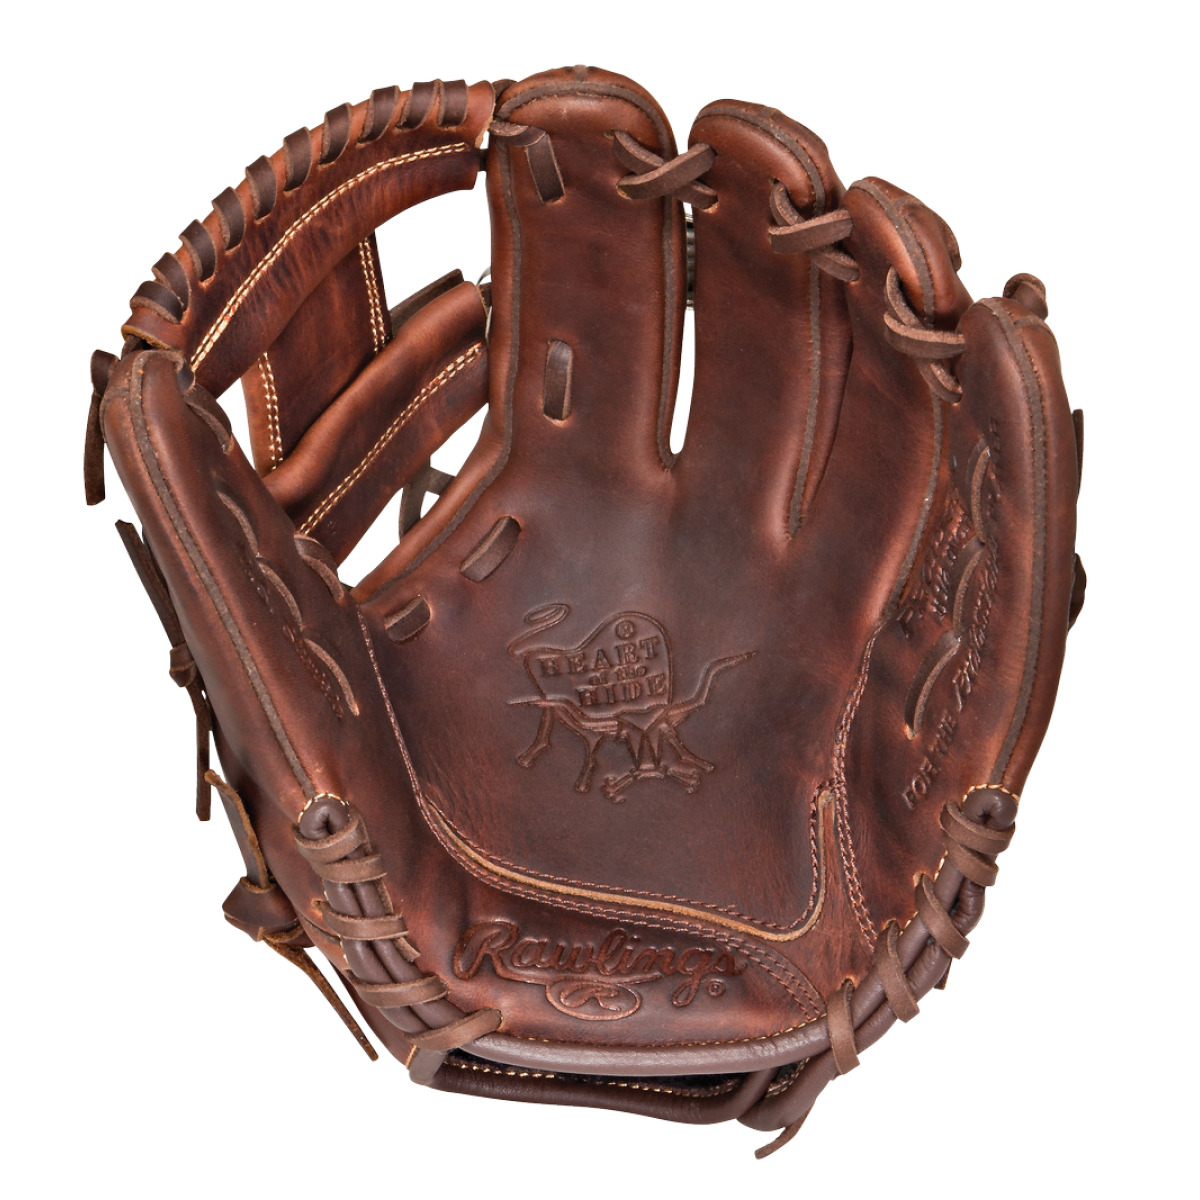 Baseball glove clipart picture royalty free stock Baseball glove PNG picture royalty free stock